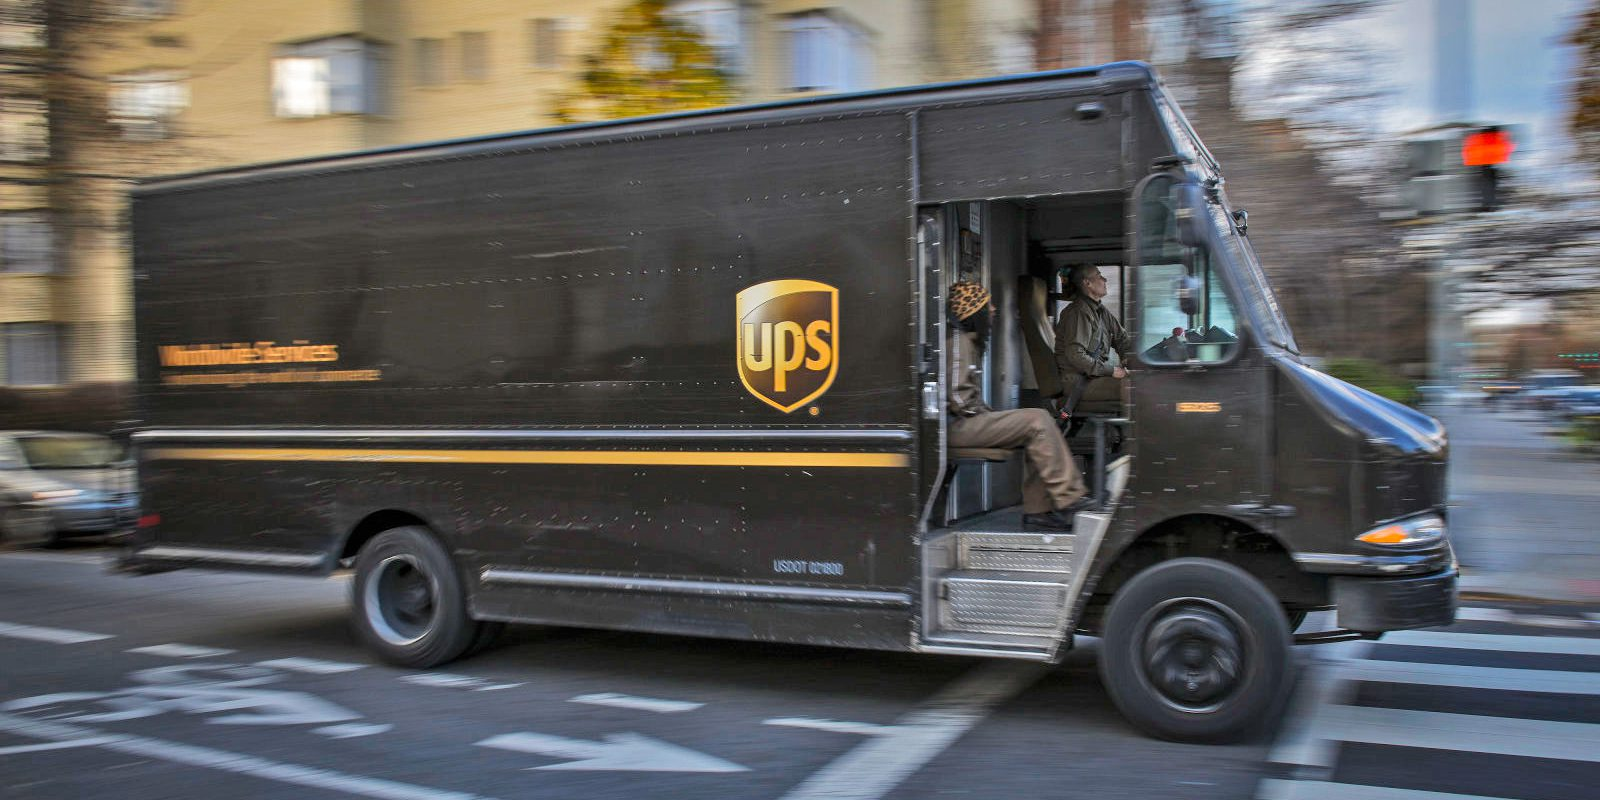 Ups Orders A Fleet Of 50 All Electric Delivery Trucks To Slowly Electrify Its Huge